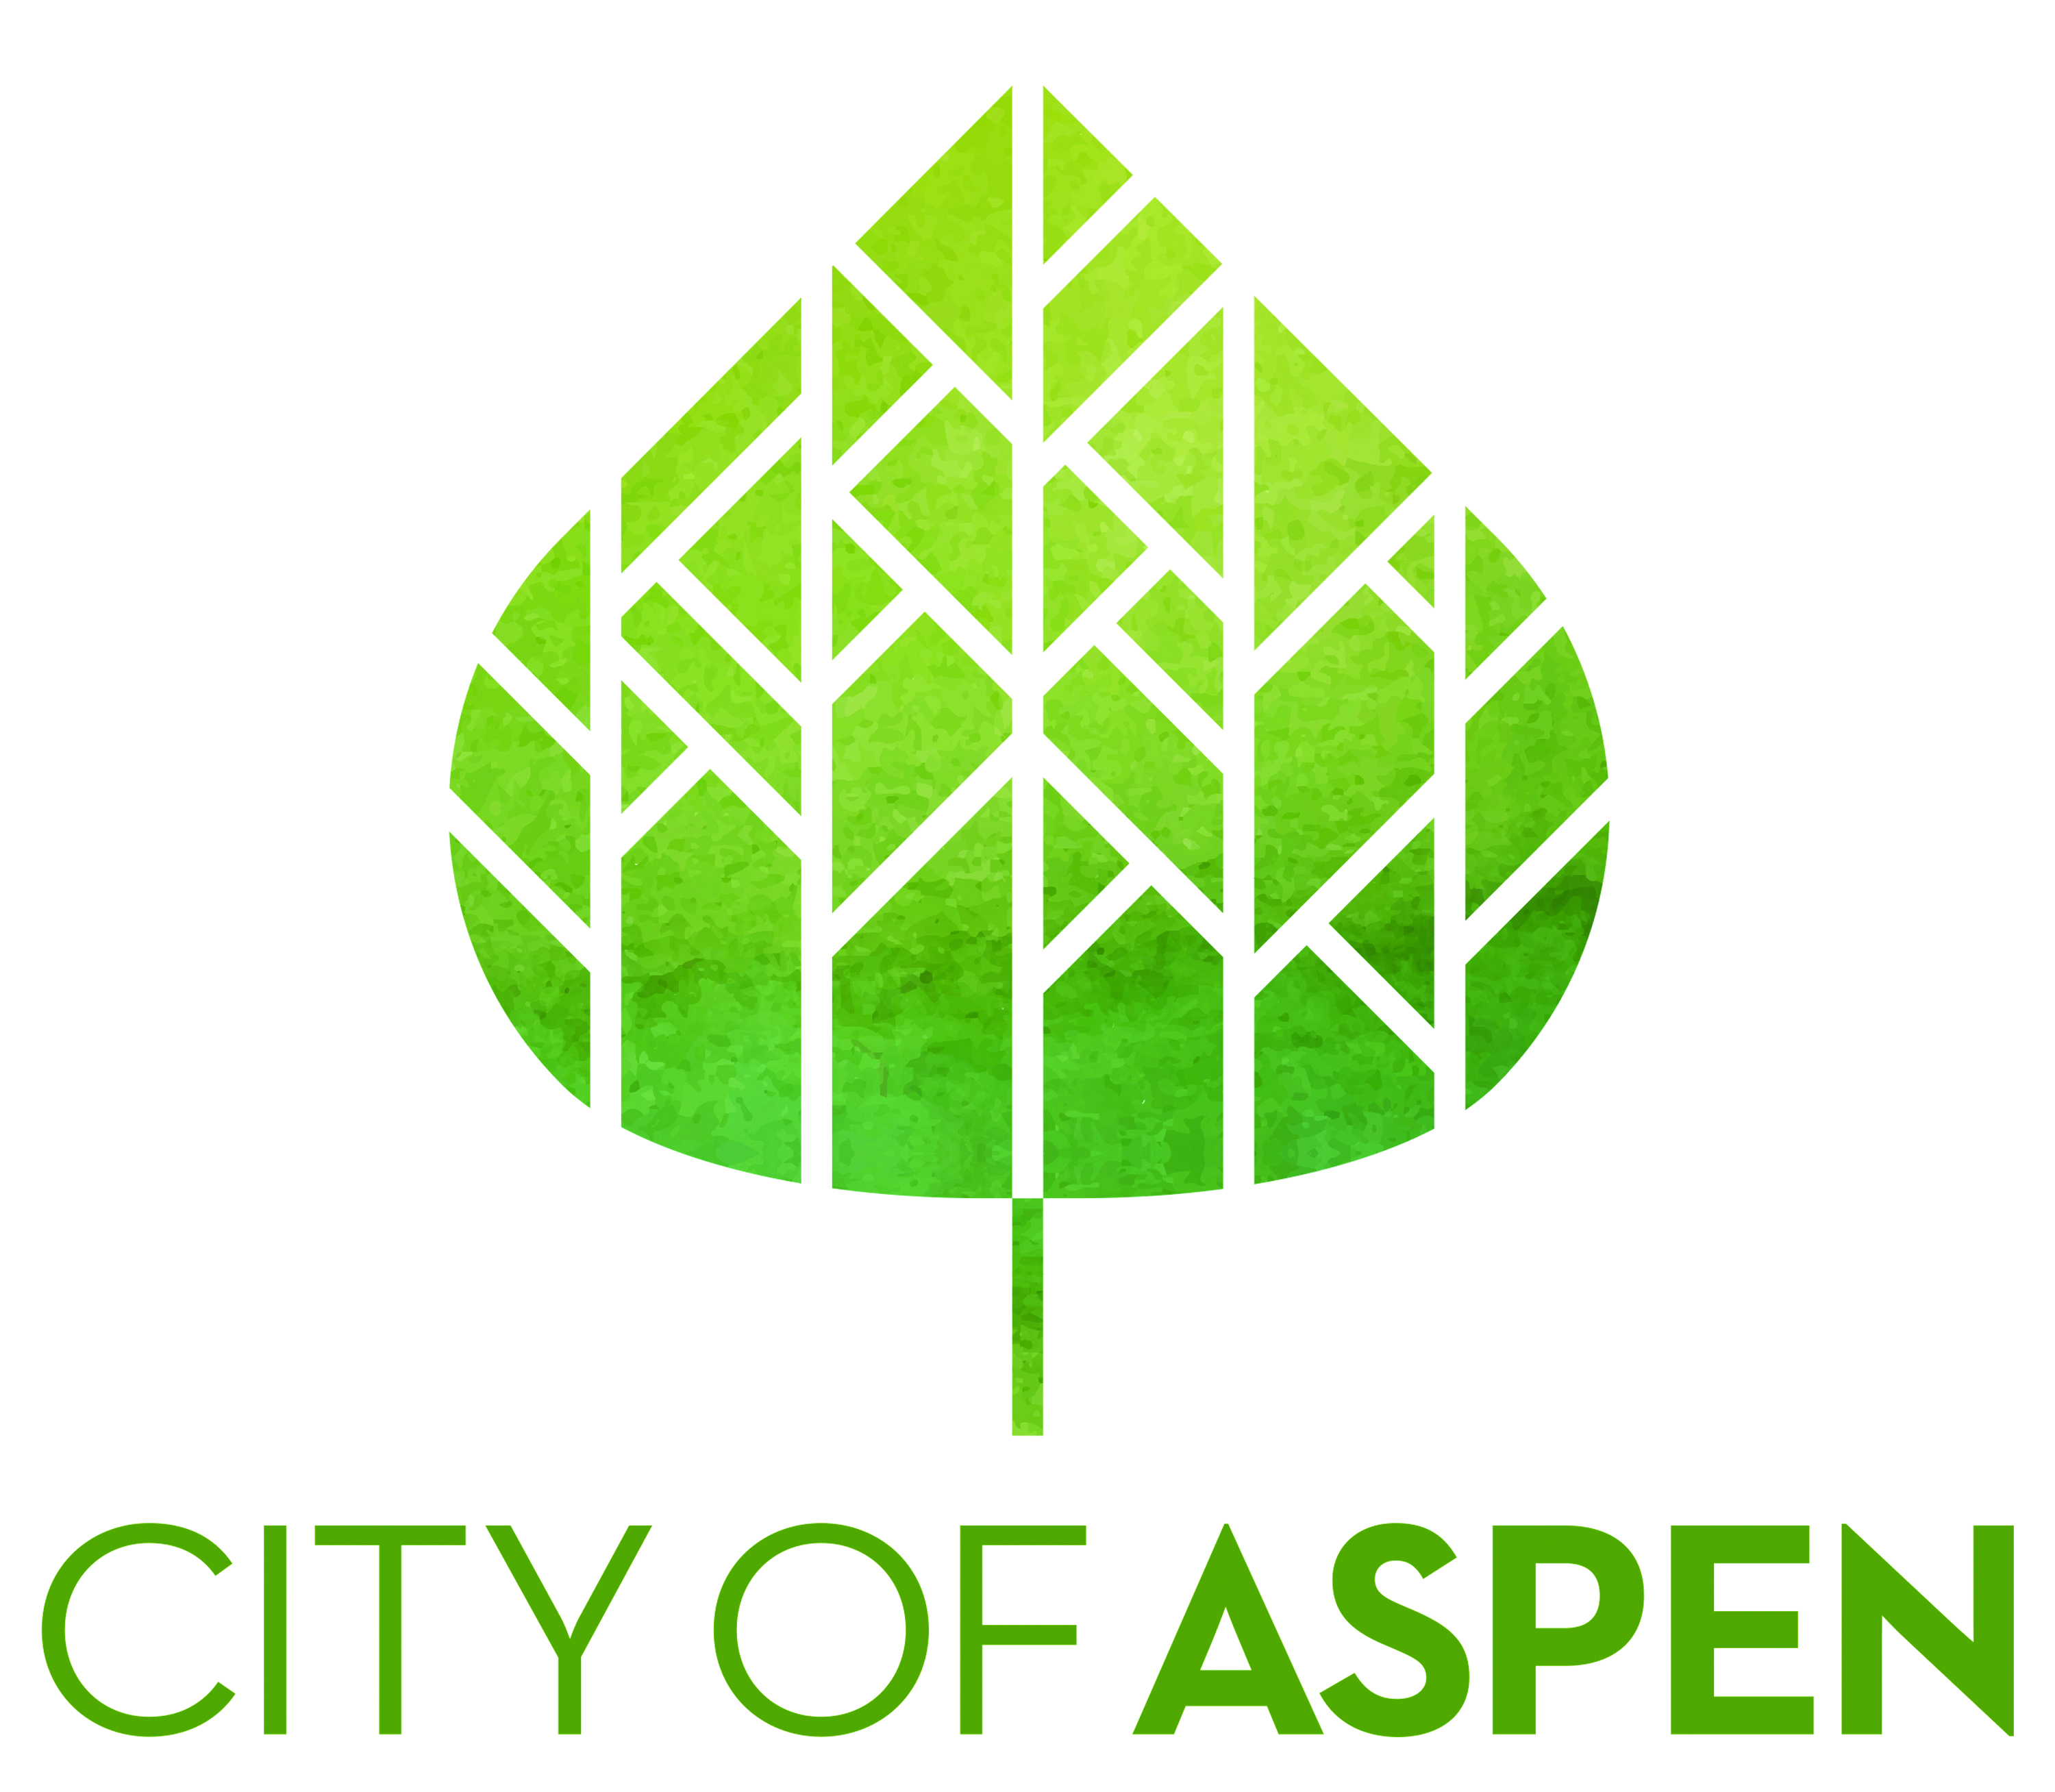 Organization logo of City of Aspen